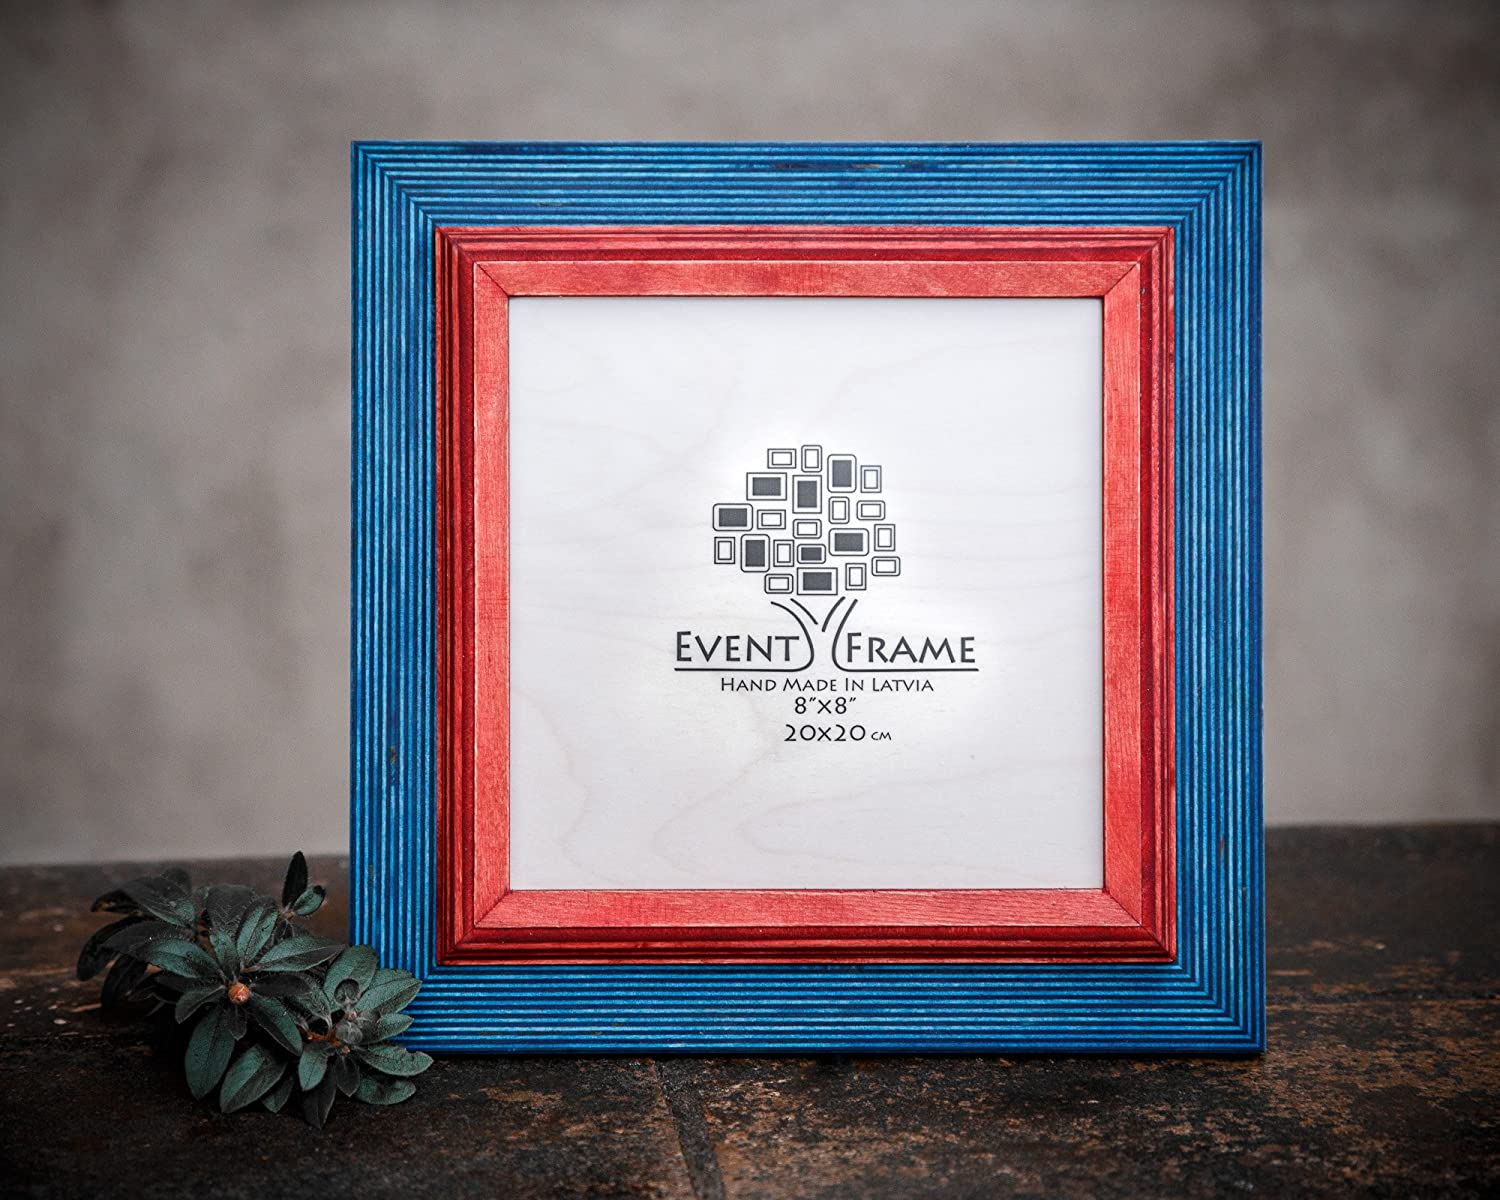 Red Picture Frame Wood Photo Frame Rustic Frame SIZES 4x4 4x6 5x5 5x7 5.5x8.5 6x6 6x8 7x7 7x9 8x8 8x10 10x10 8x12 8.5x11 11x14